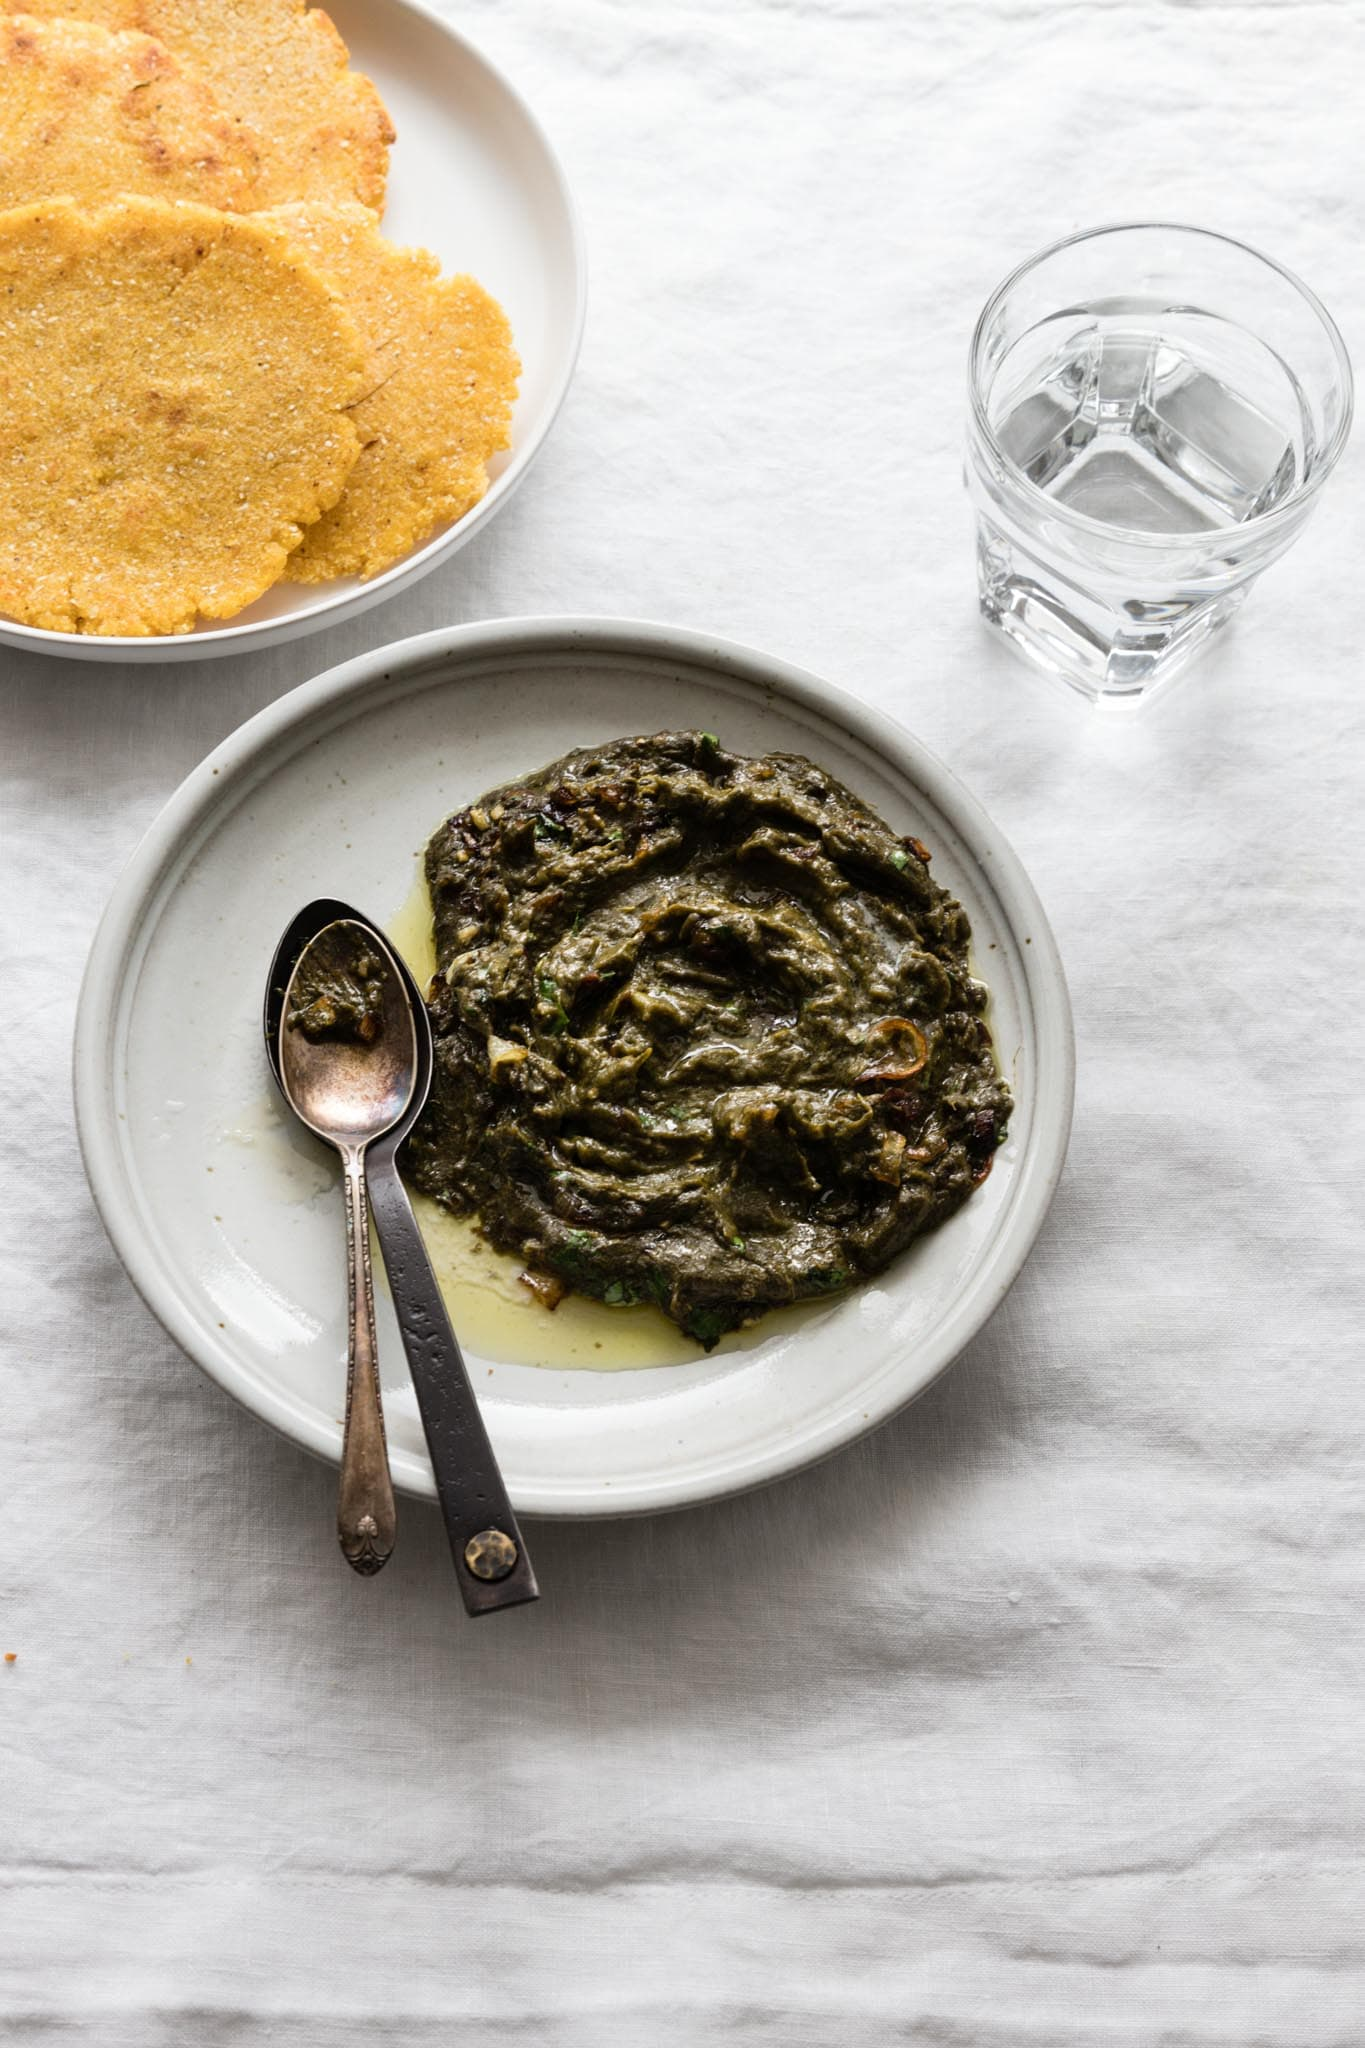 Easy Sarson Ka Saag on a plate with a couple spoons on the side served with makai ki roti (cornmeal flatbread) and a glass of water